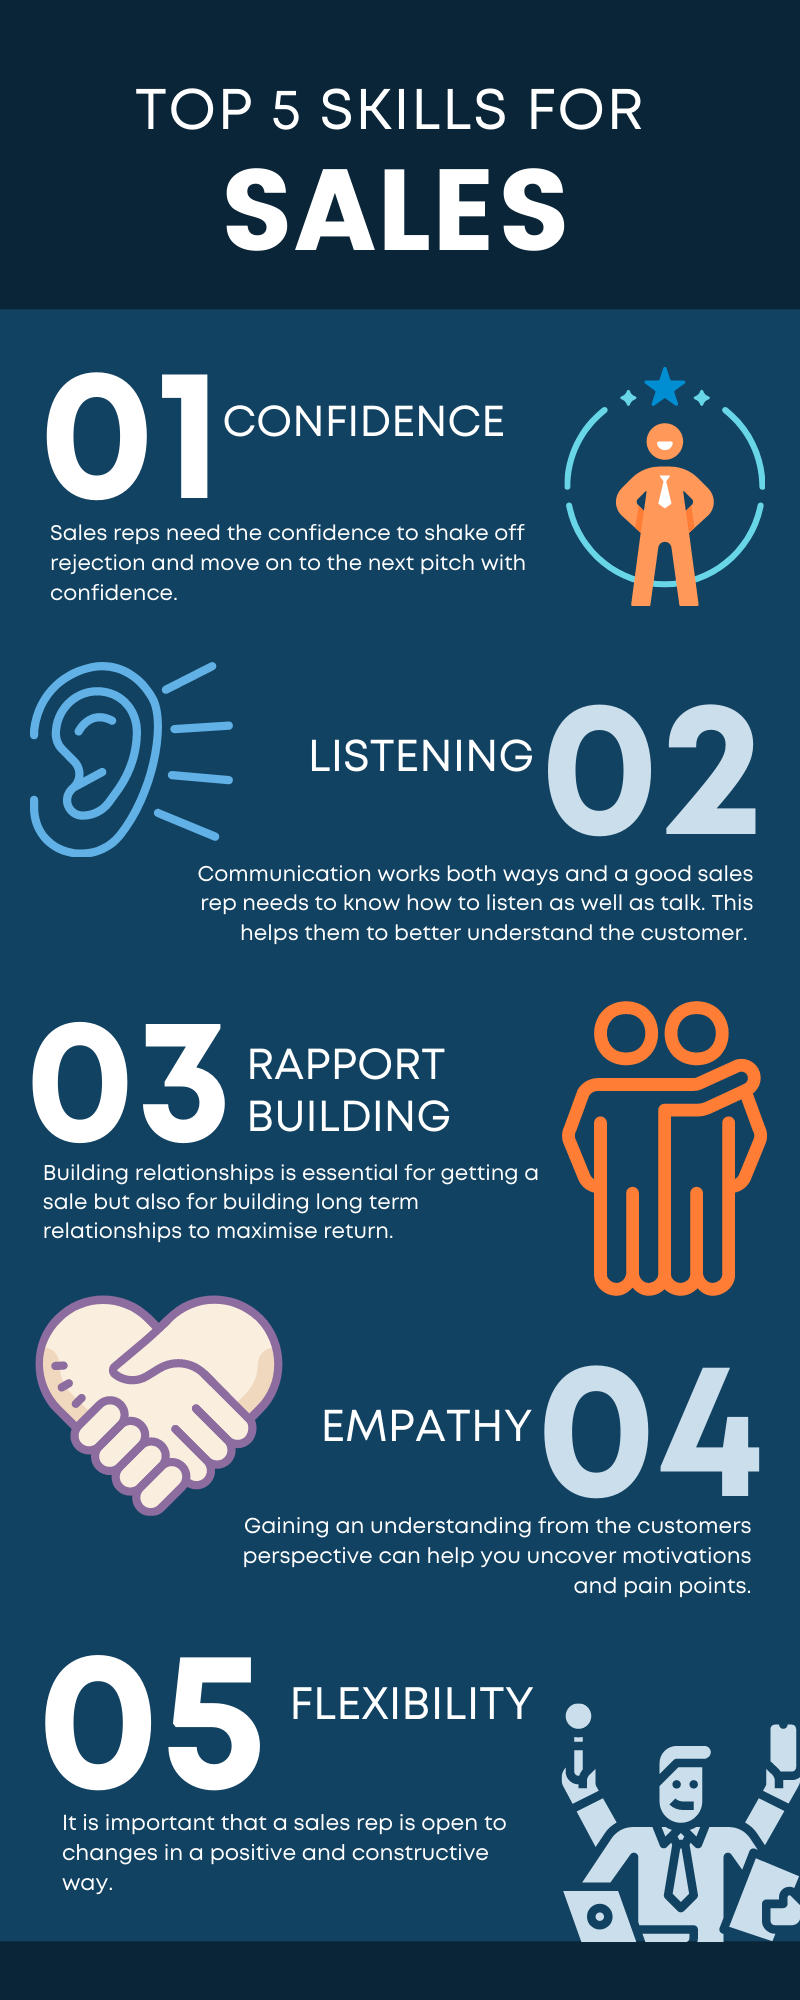 Top 5 Skills For Sales